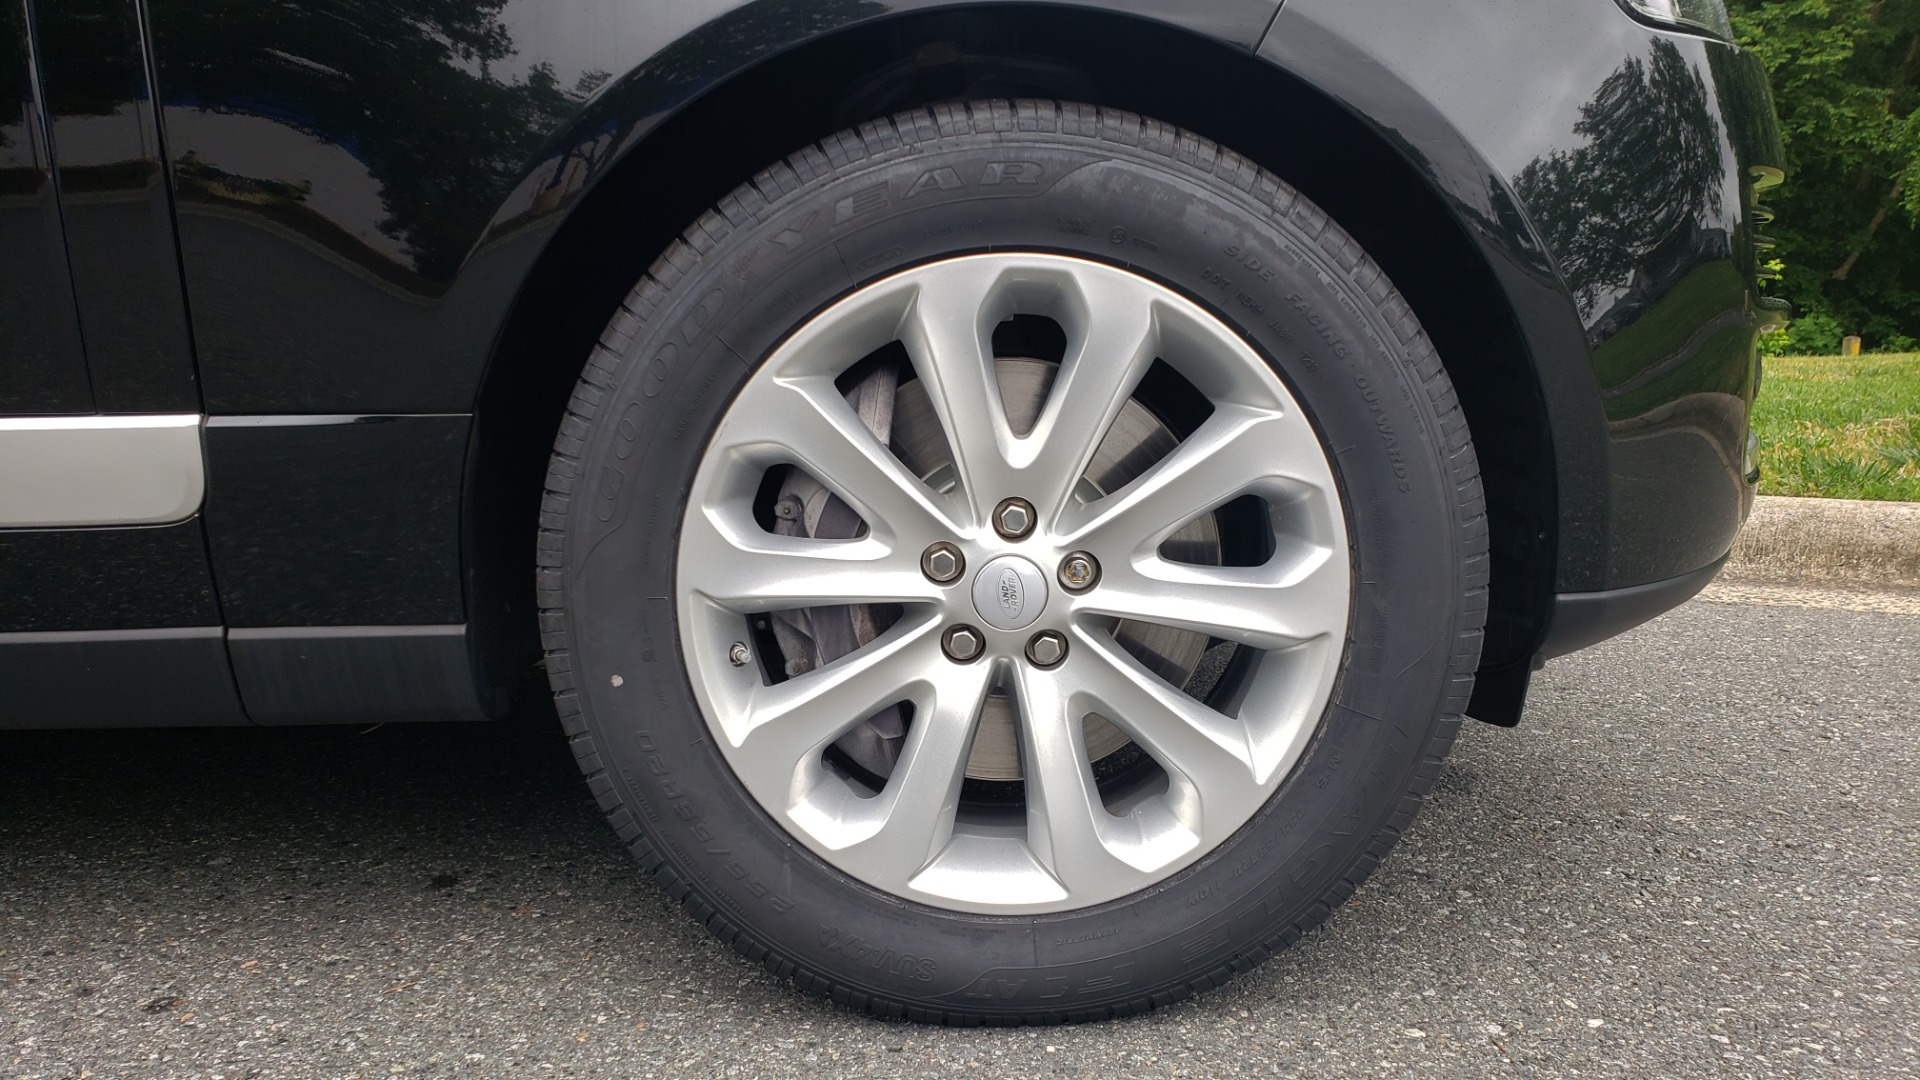 Used 2016 Land Rover Range Rover HSE 3.0L SC V6 / NAV / PANO-ROOF / VENT SEATS / REARVIEW / BLIND SPOT for sale Sold at Formula Imports in Charlotte NC 28227 88